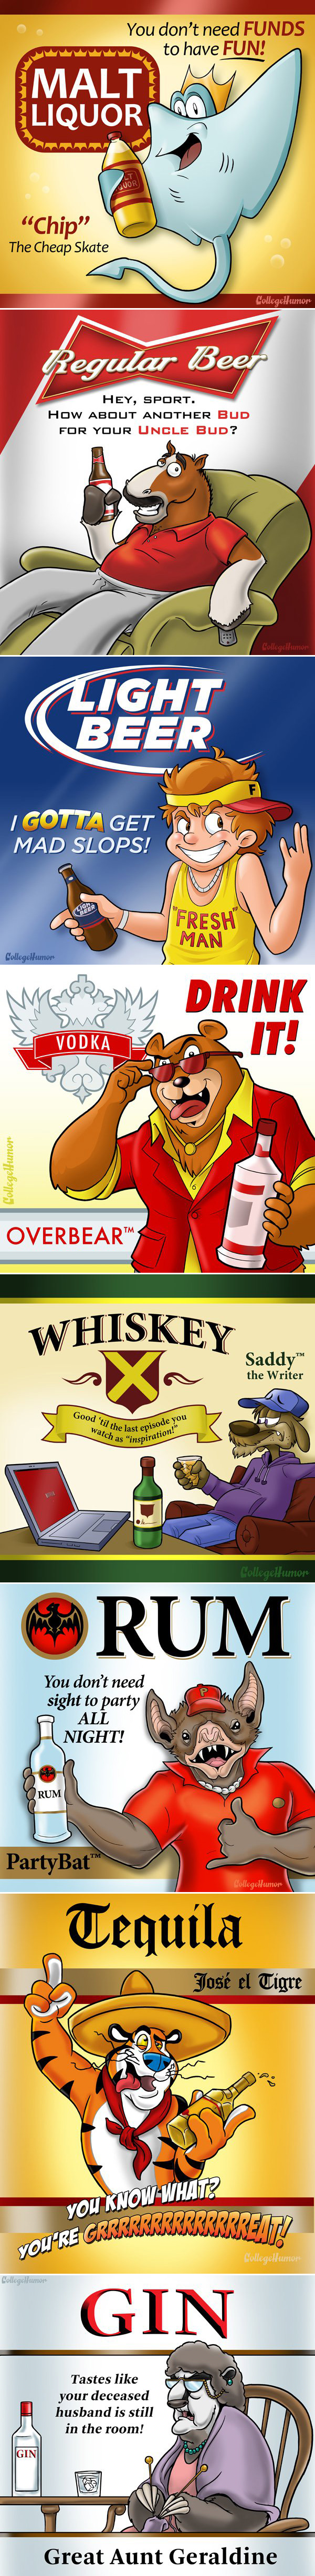 booze mascots